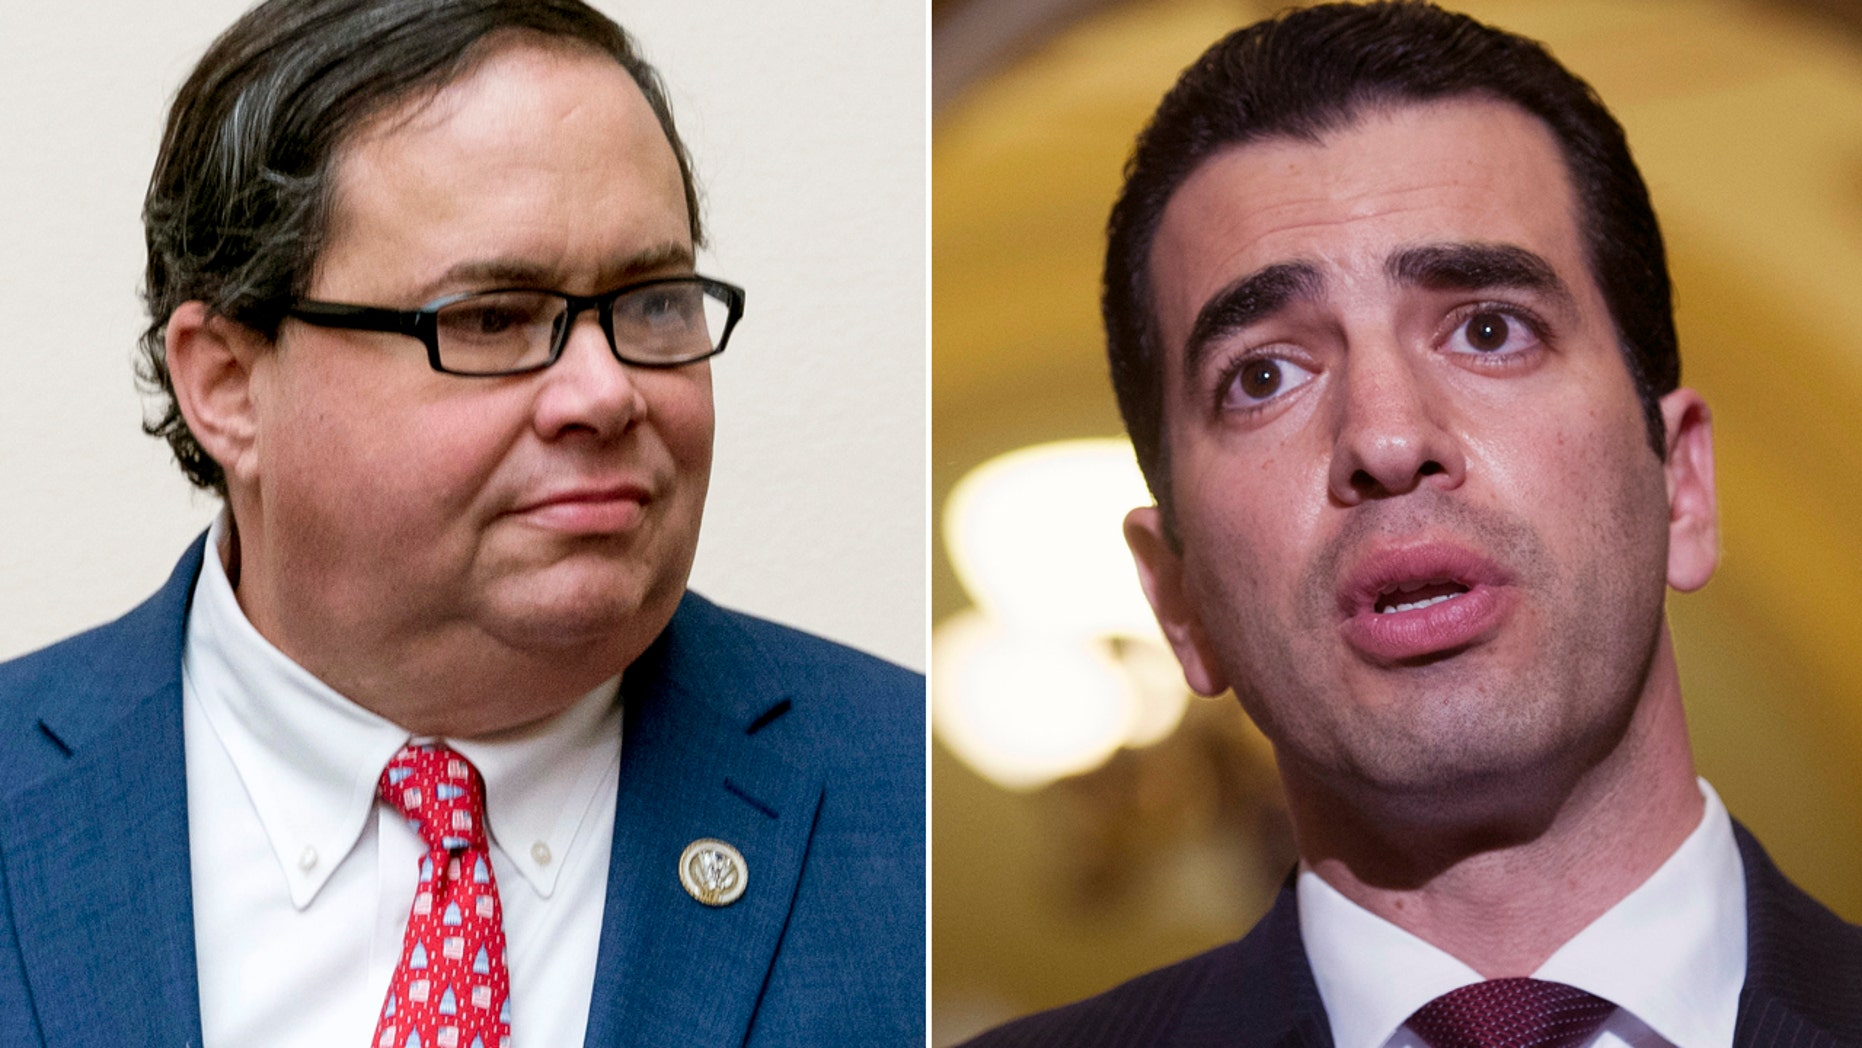 Rep. Blake Farenthold, R-Texas, and Rep. Ruben Kihuen, D-Nev., have announced they will not run for re-election next year amid sexual harassment allegations.